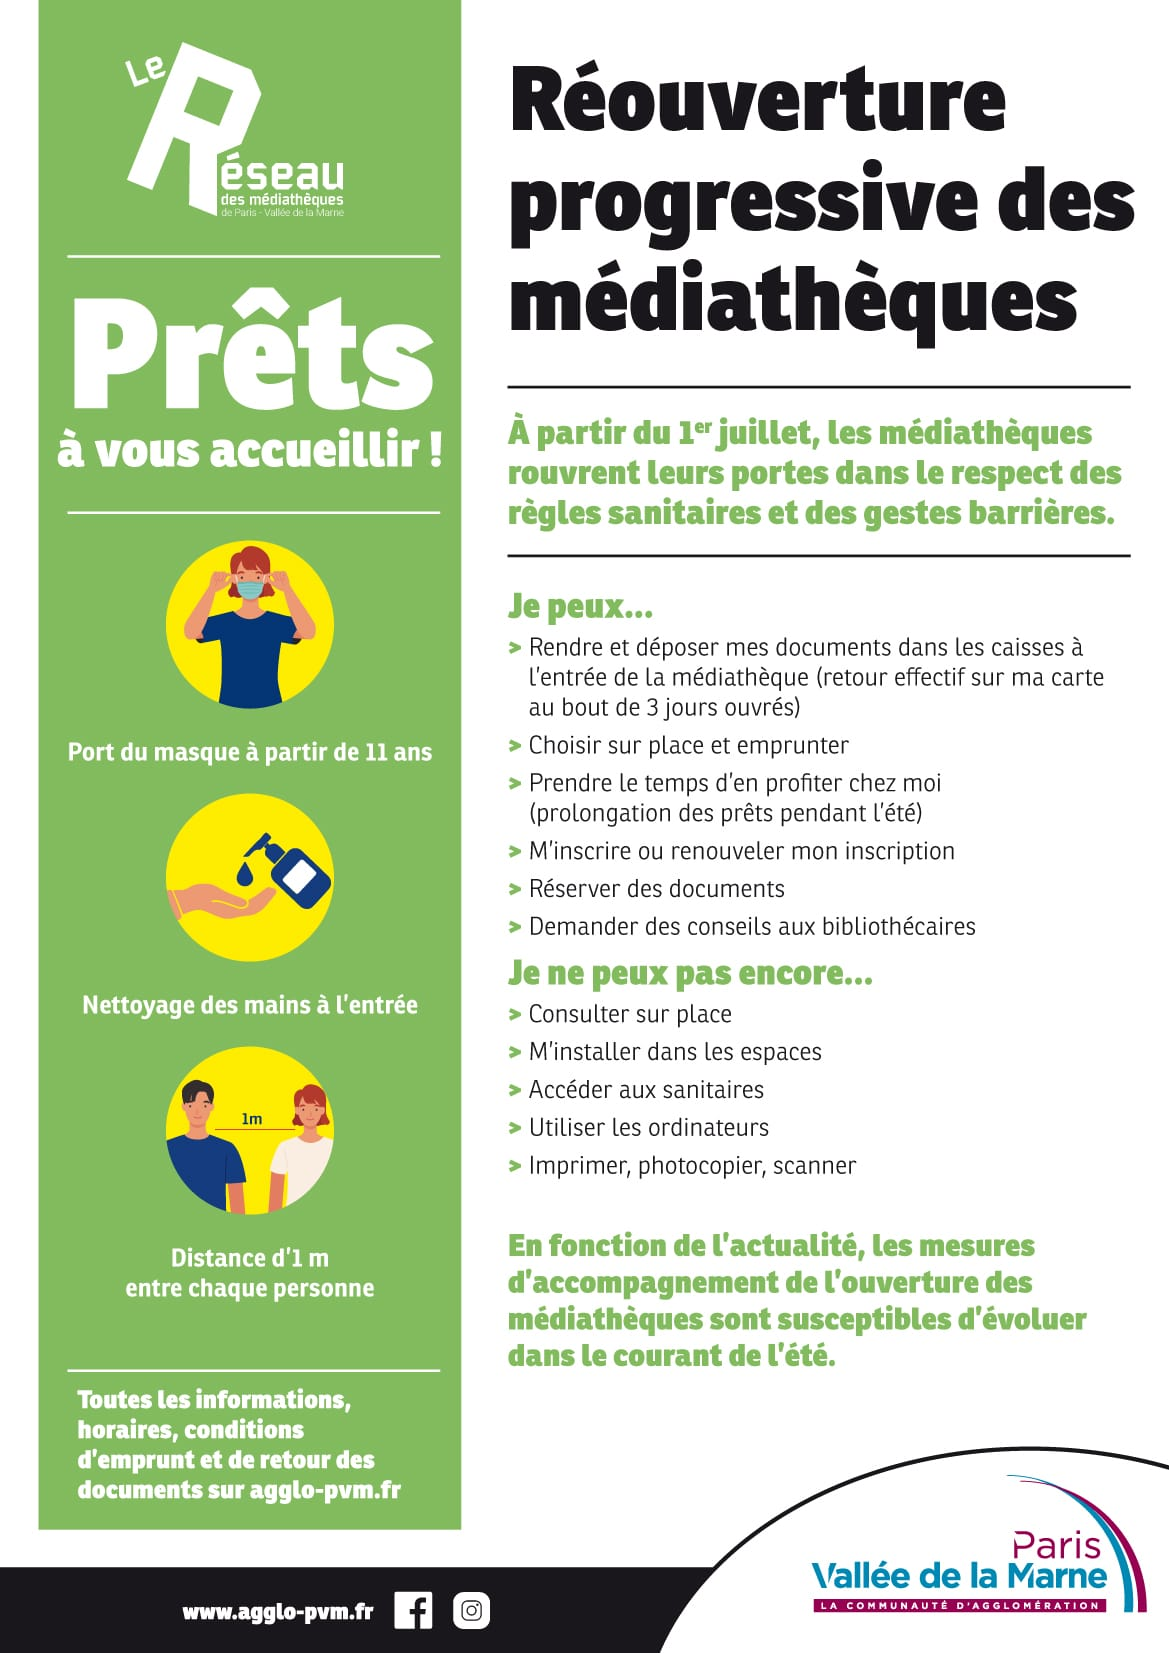 Reouverture Mediatheques Juillet 2020